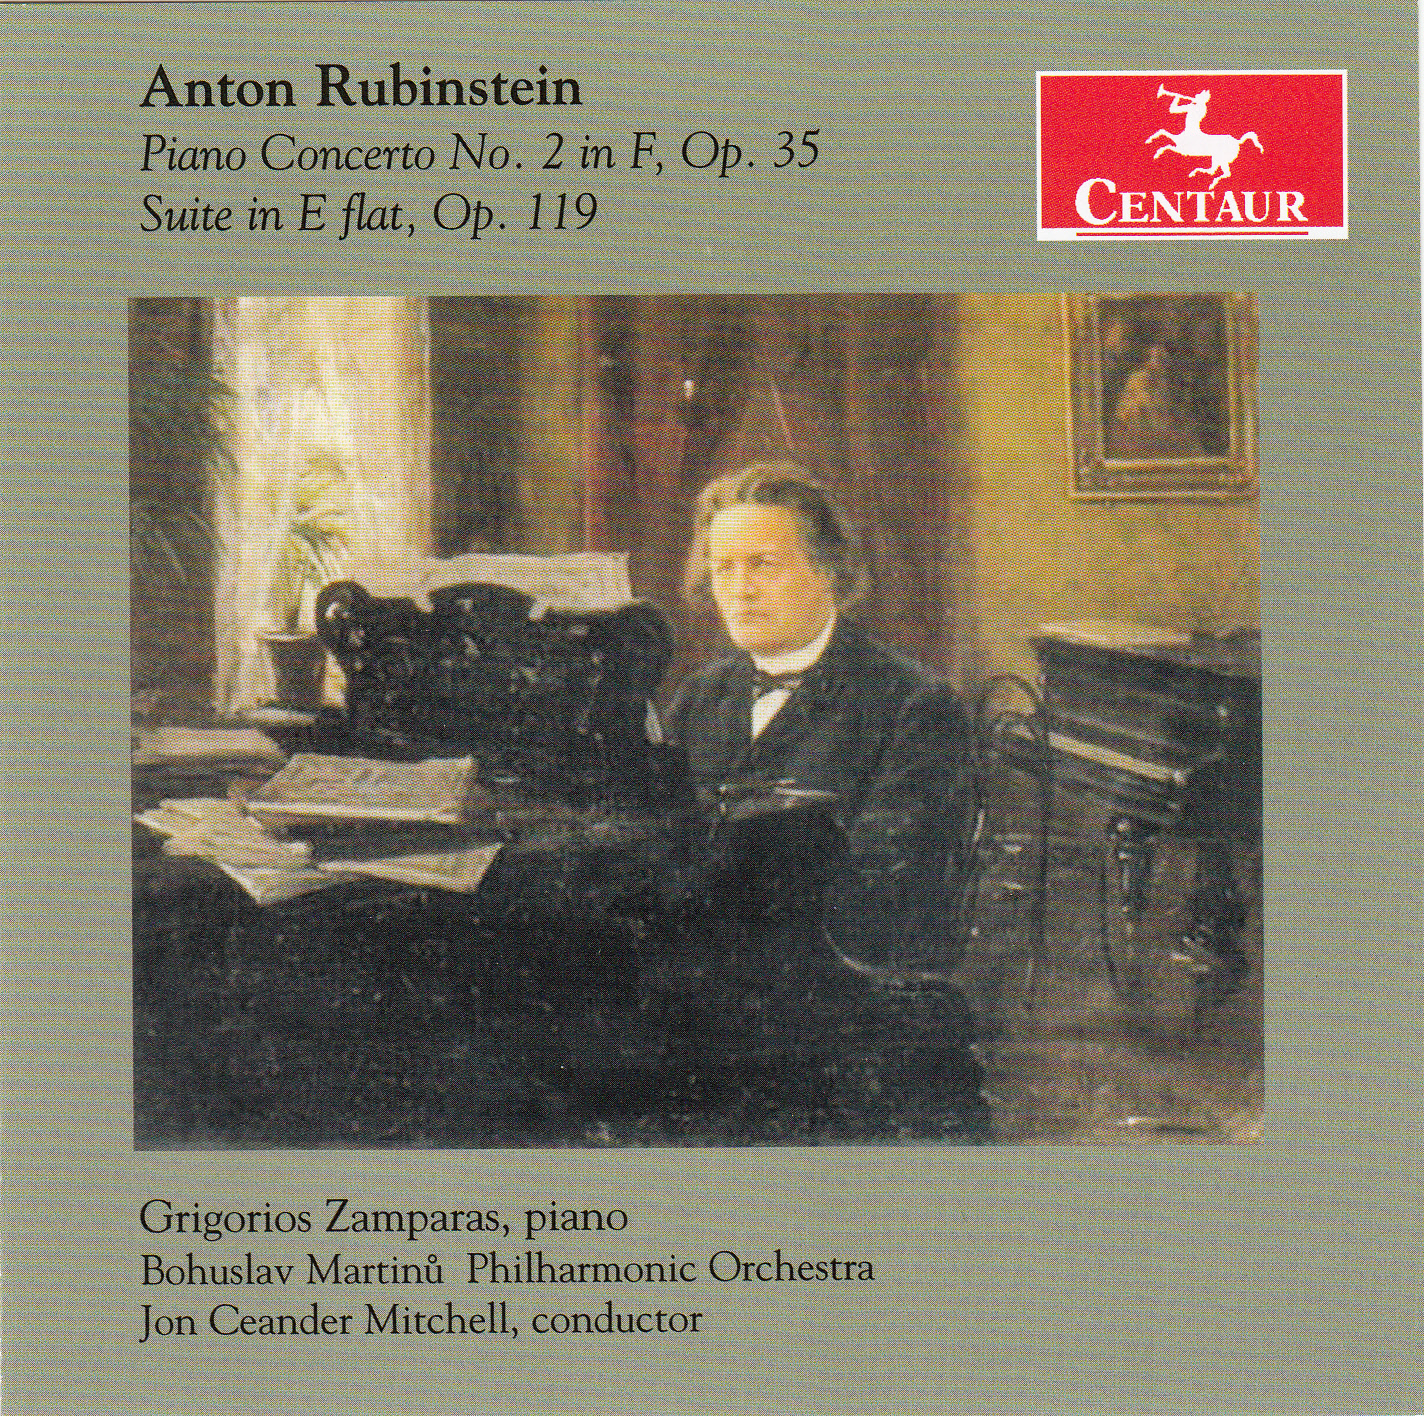 Pianist Anton Rubinstein: biography, students 31